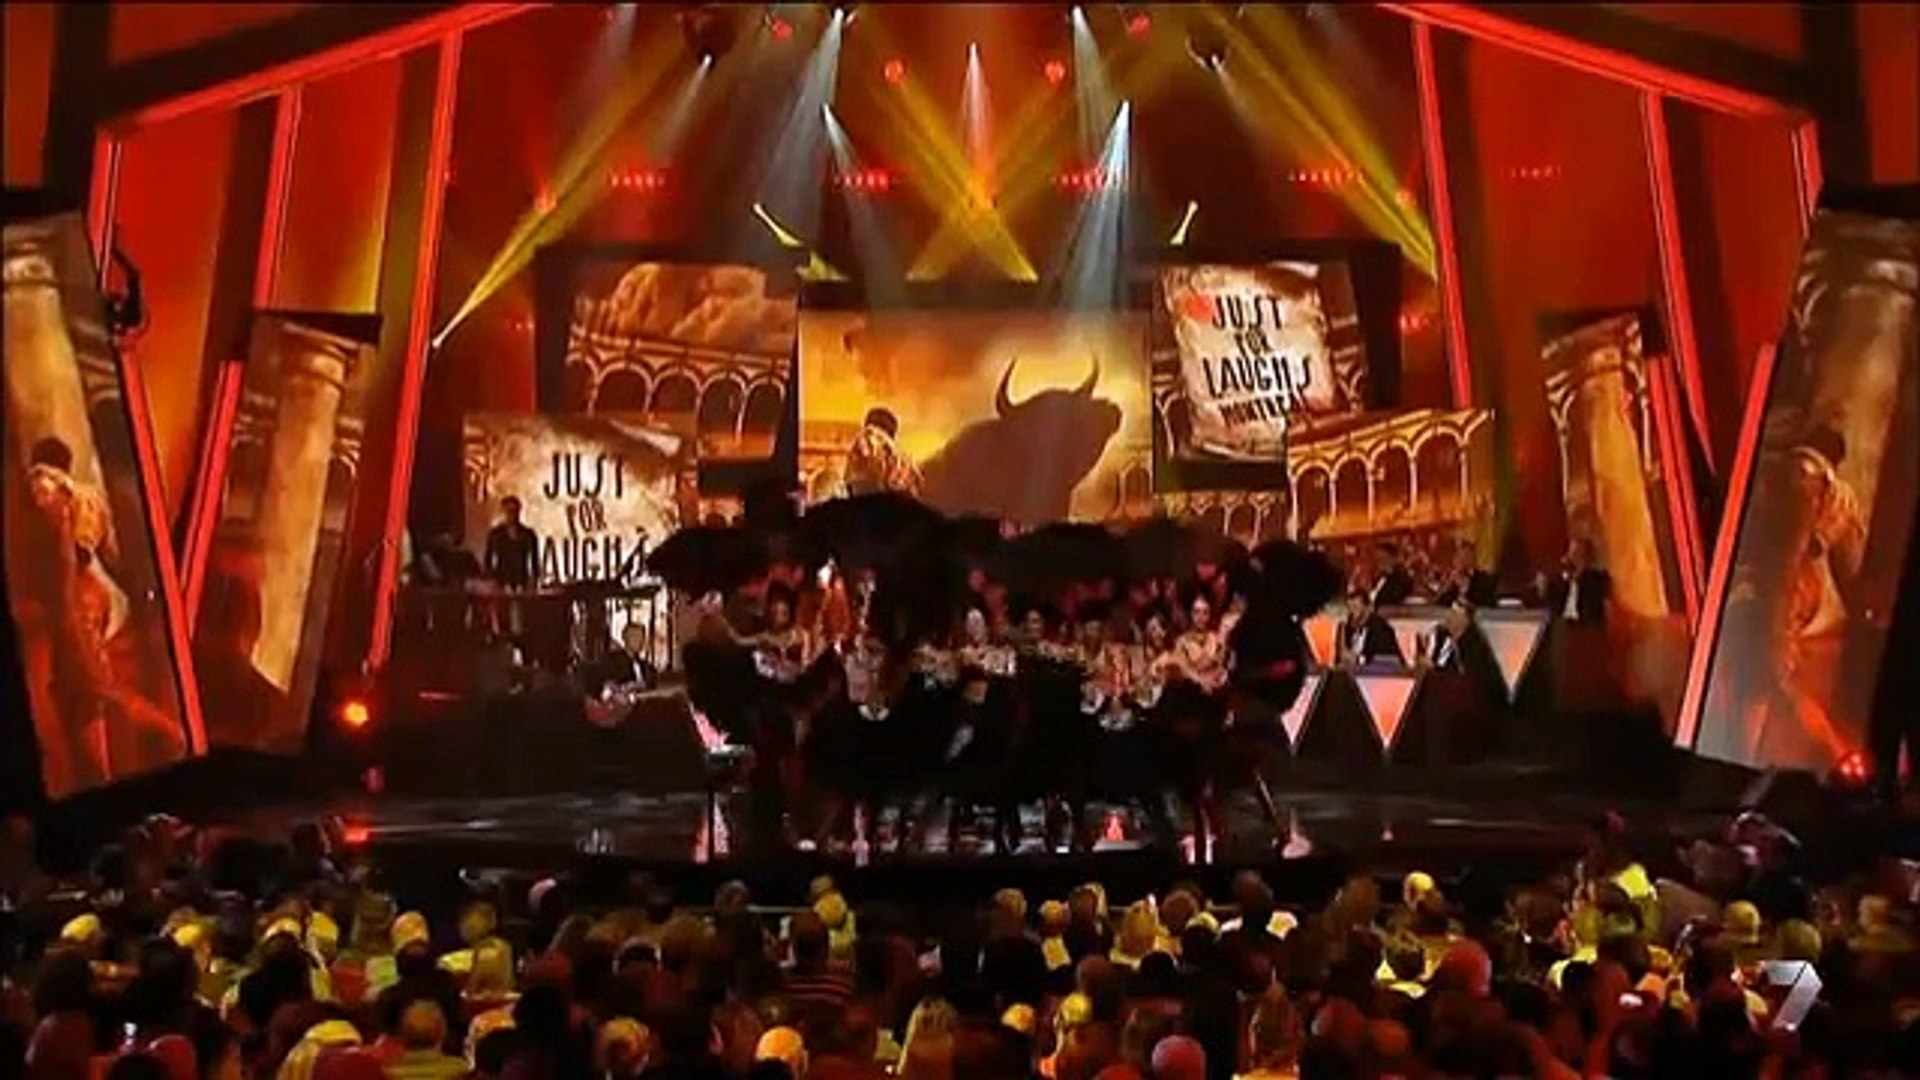 Don Rickles Just For Laughs 2014